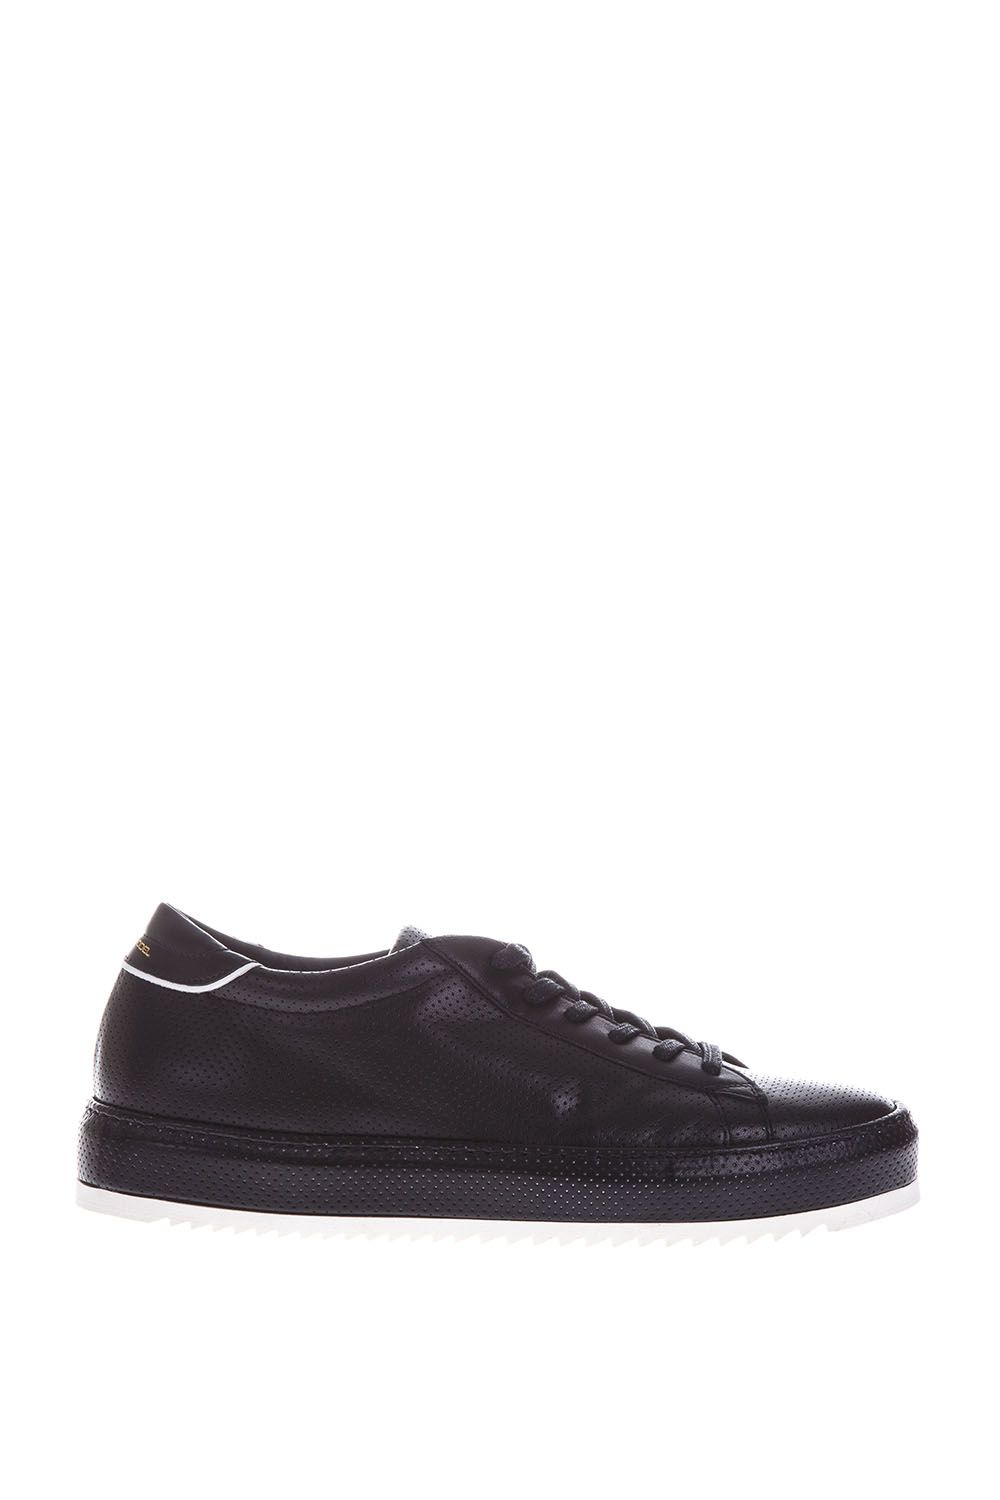 Philippe Model Perforated Leather Sneakers